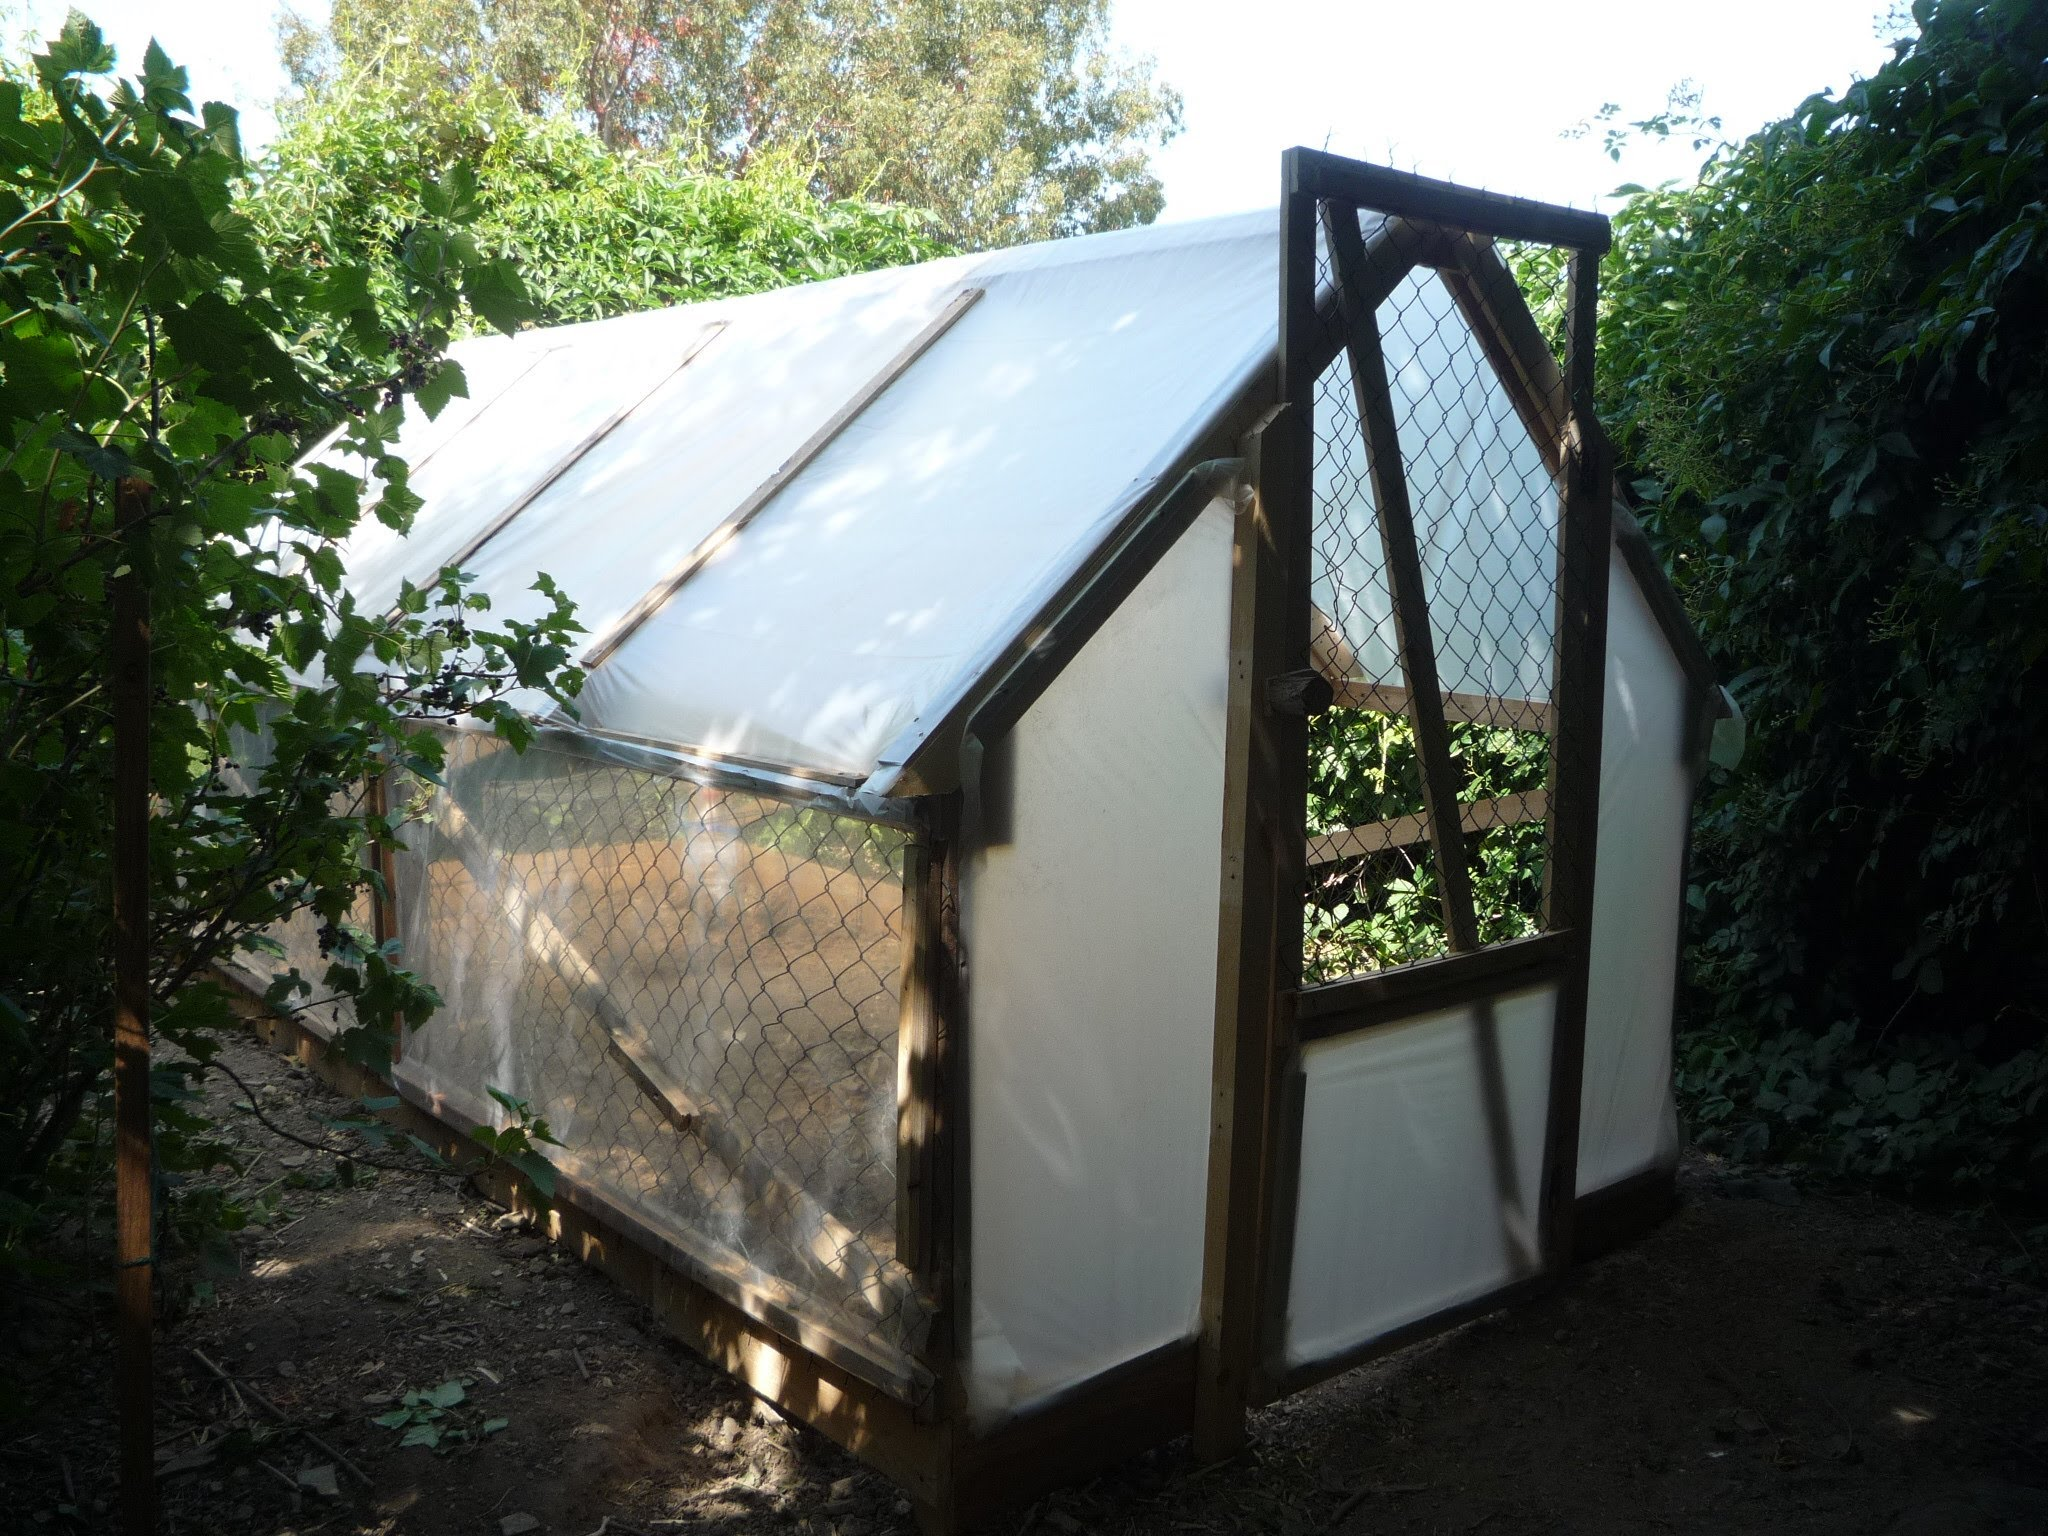 The diy greenhouse from upcycled materials 5 plans for Materials to make a greenhouse